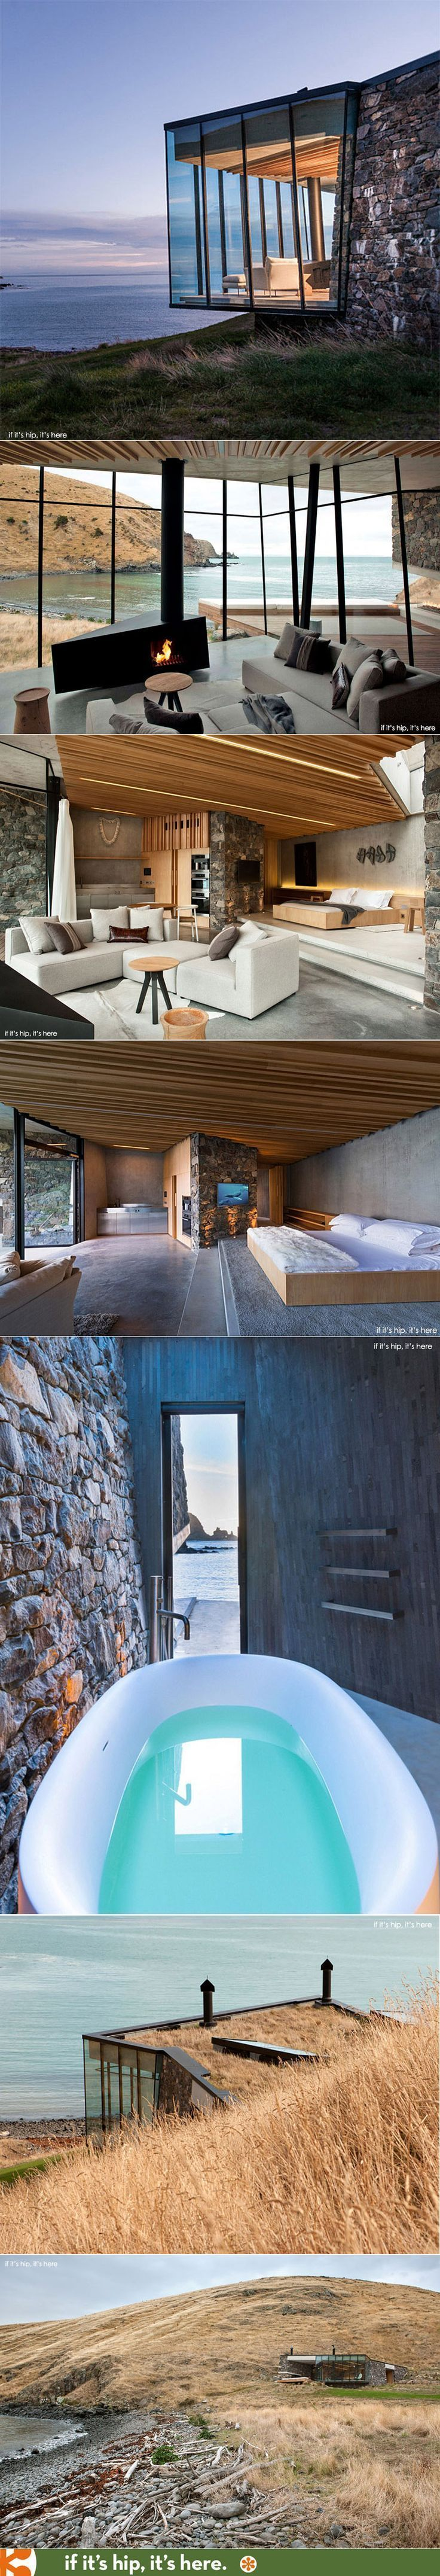 awesome cool Sexy, Secluded, Seascape Retreat in New Zealand - if it's hip, it's here by... by http://www.danaz-home-decorations.xyz/modern-home-design/cool-sexy-secluded-seascape-retreat-in-new-zealand-if-its-hip-its-here-by/